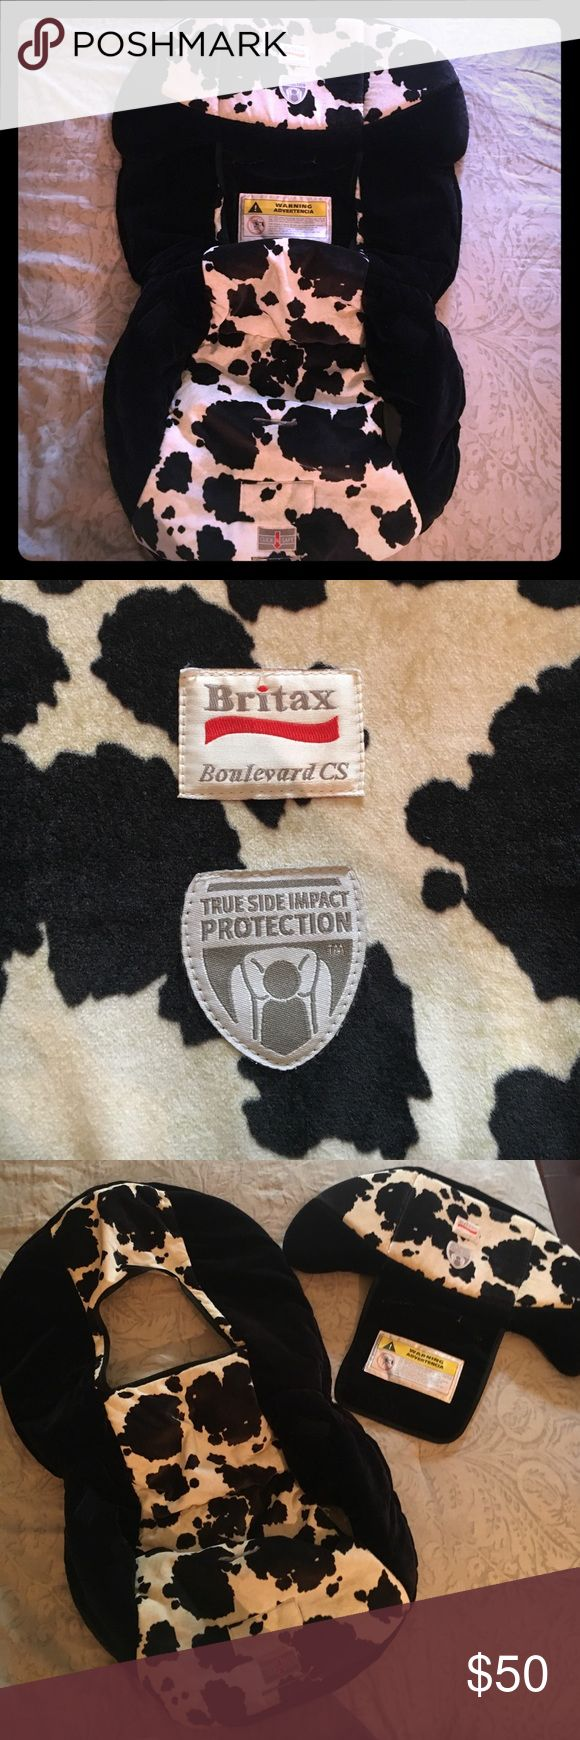 Marathon 70-G3 Brittax Toddler Car Seat Cover Perfect New condition, has no flaws. Super thick and soft velvet fabric. Cute Black and White cow printed Brittax Marathon car seat cover. For size 70-3G , has side impact cushion that can be taken off if needed. Very nice! Brittax Accessories